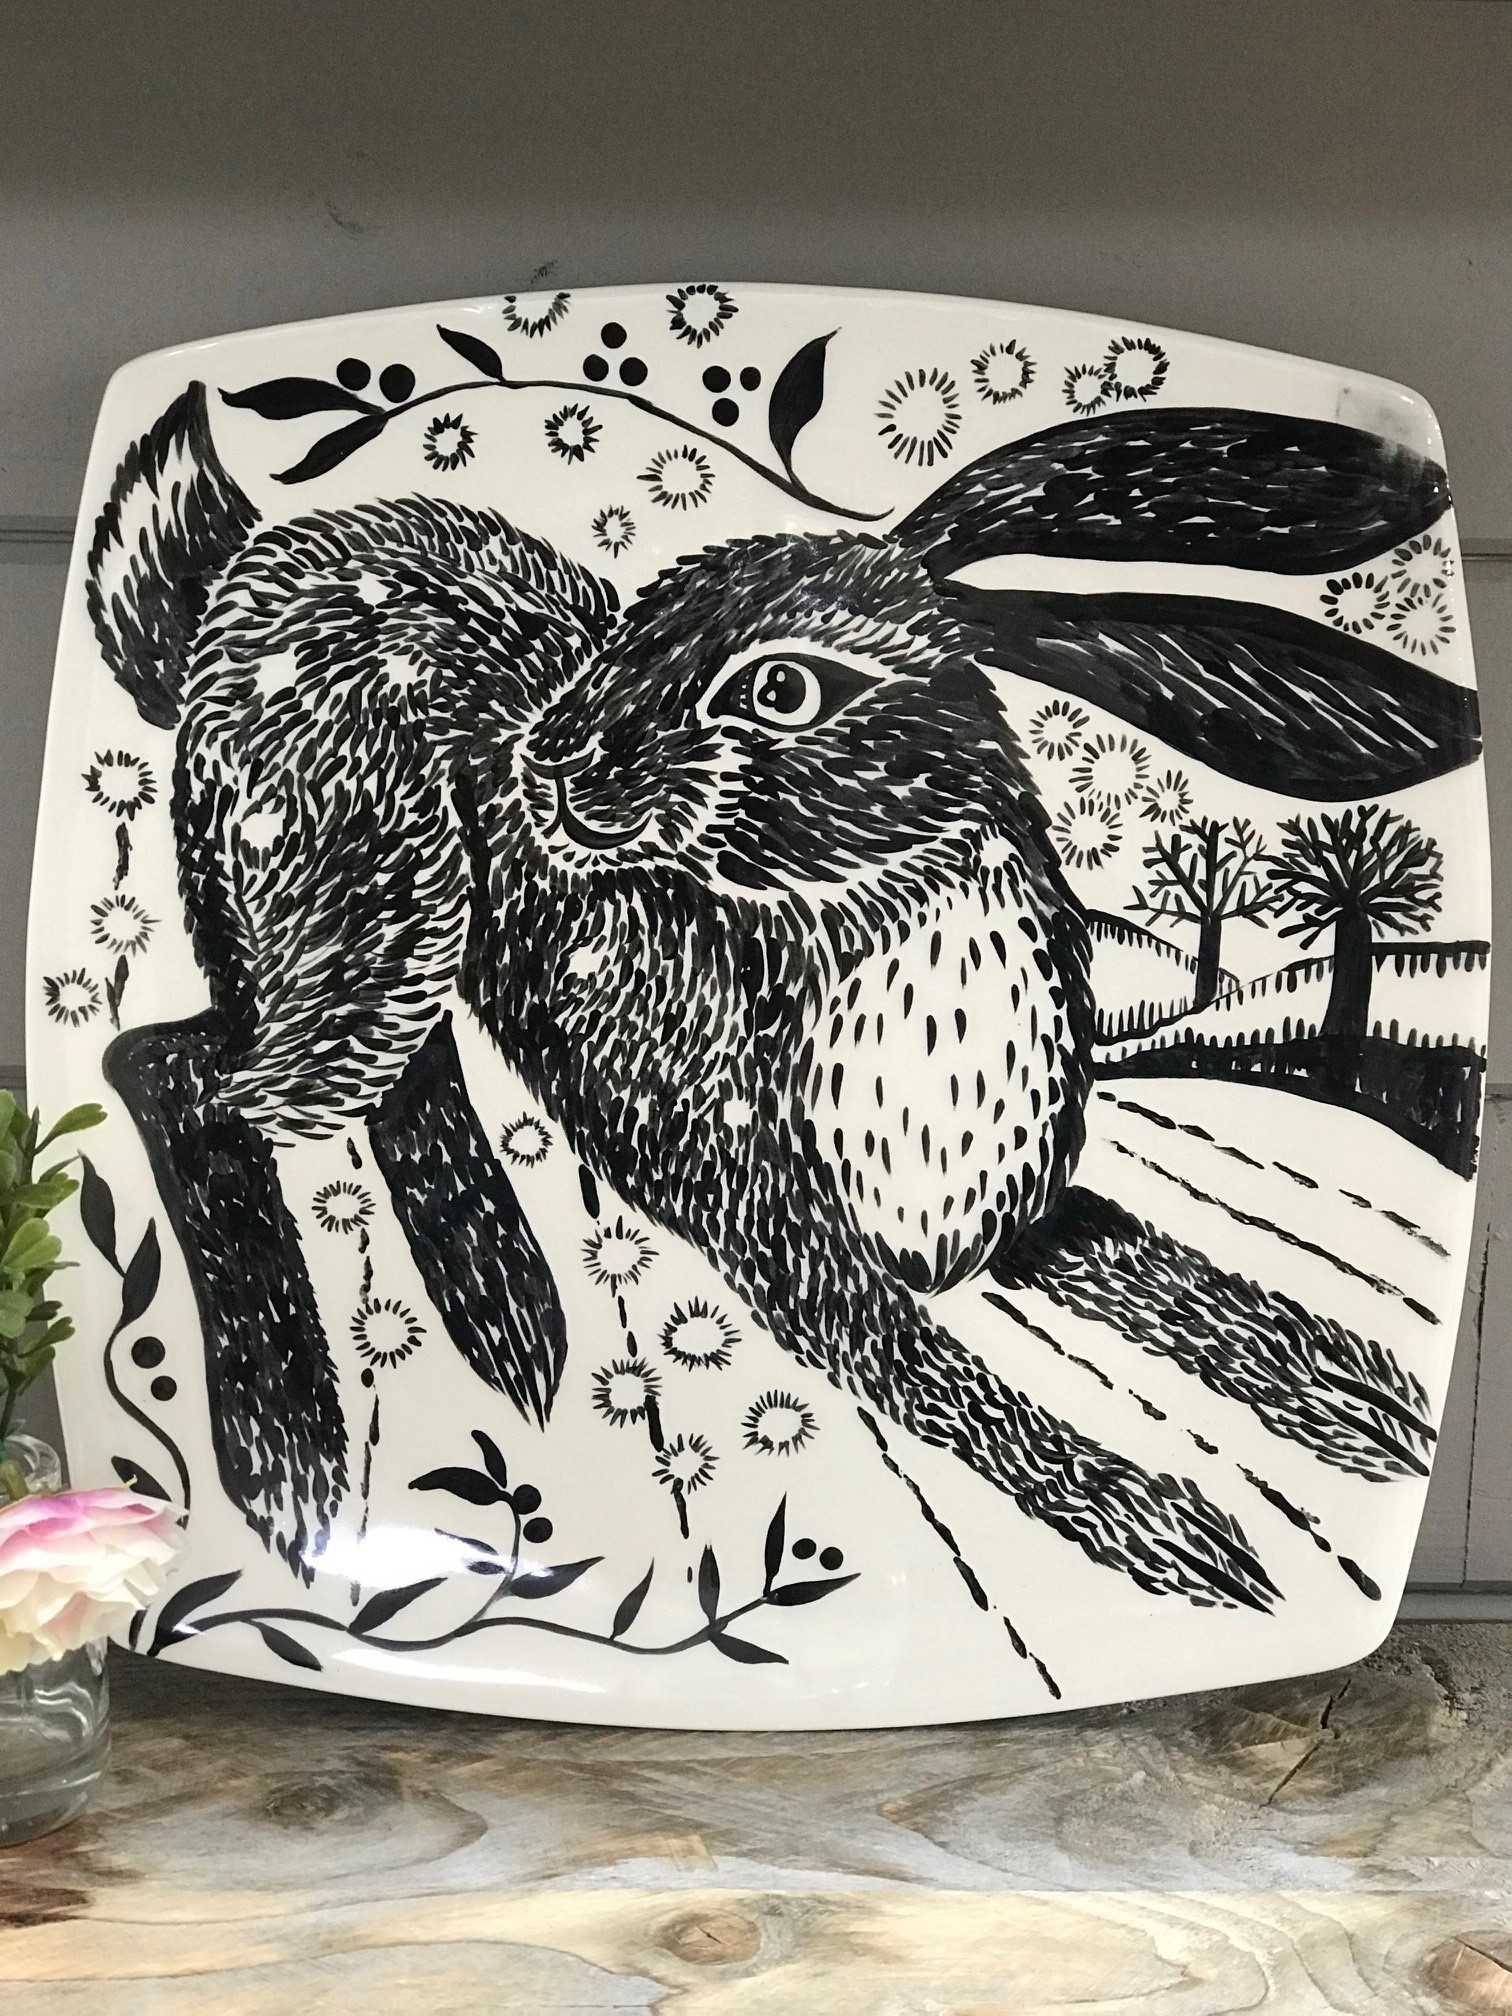 Workshop: a Hare on a Sushi Plate 26/08